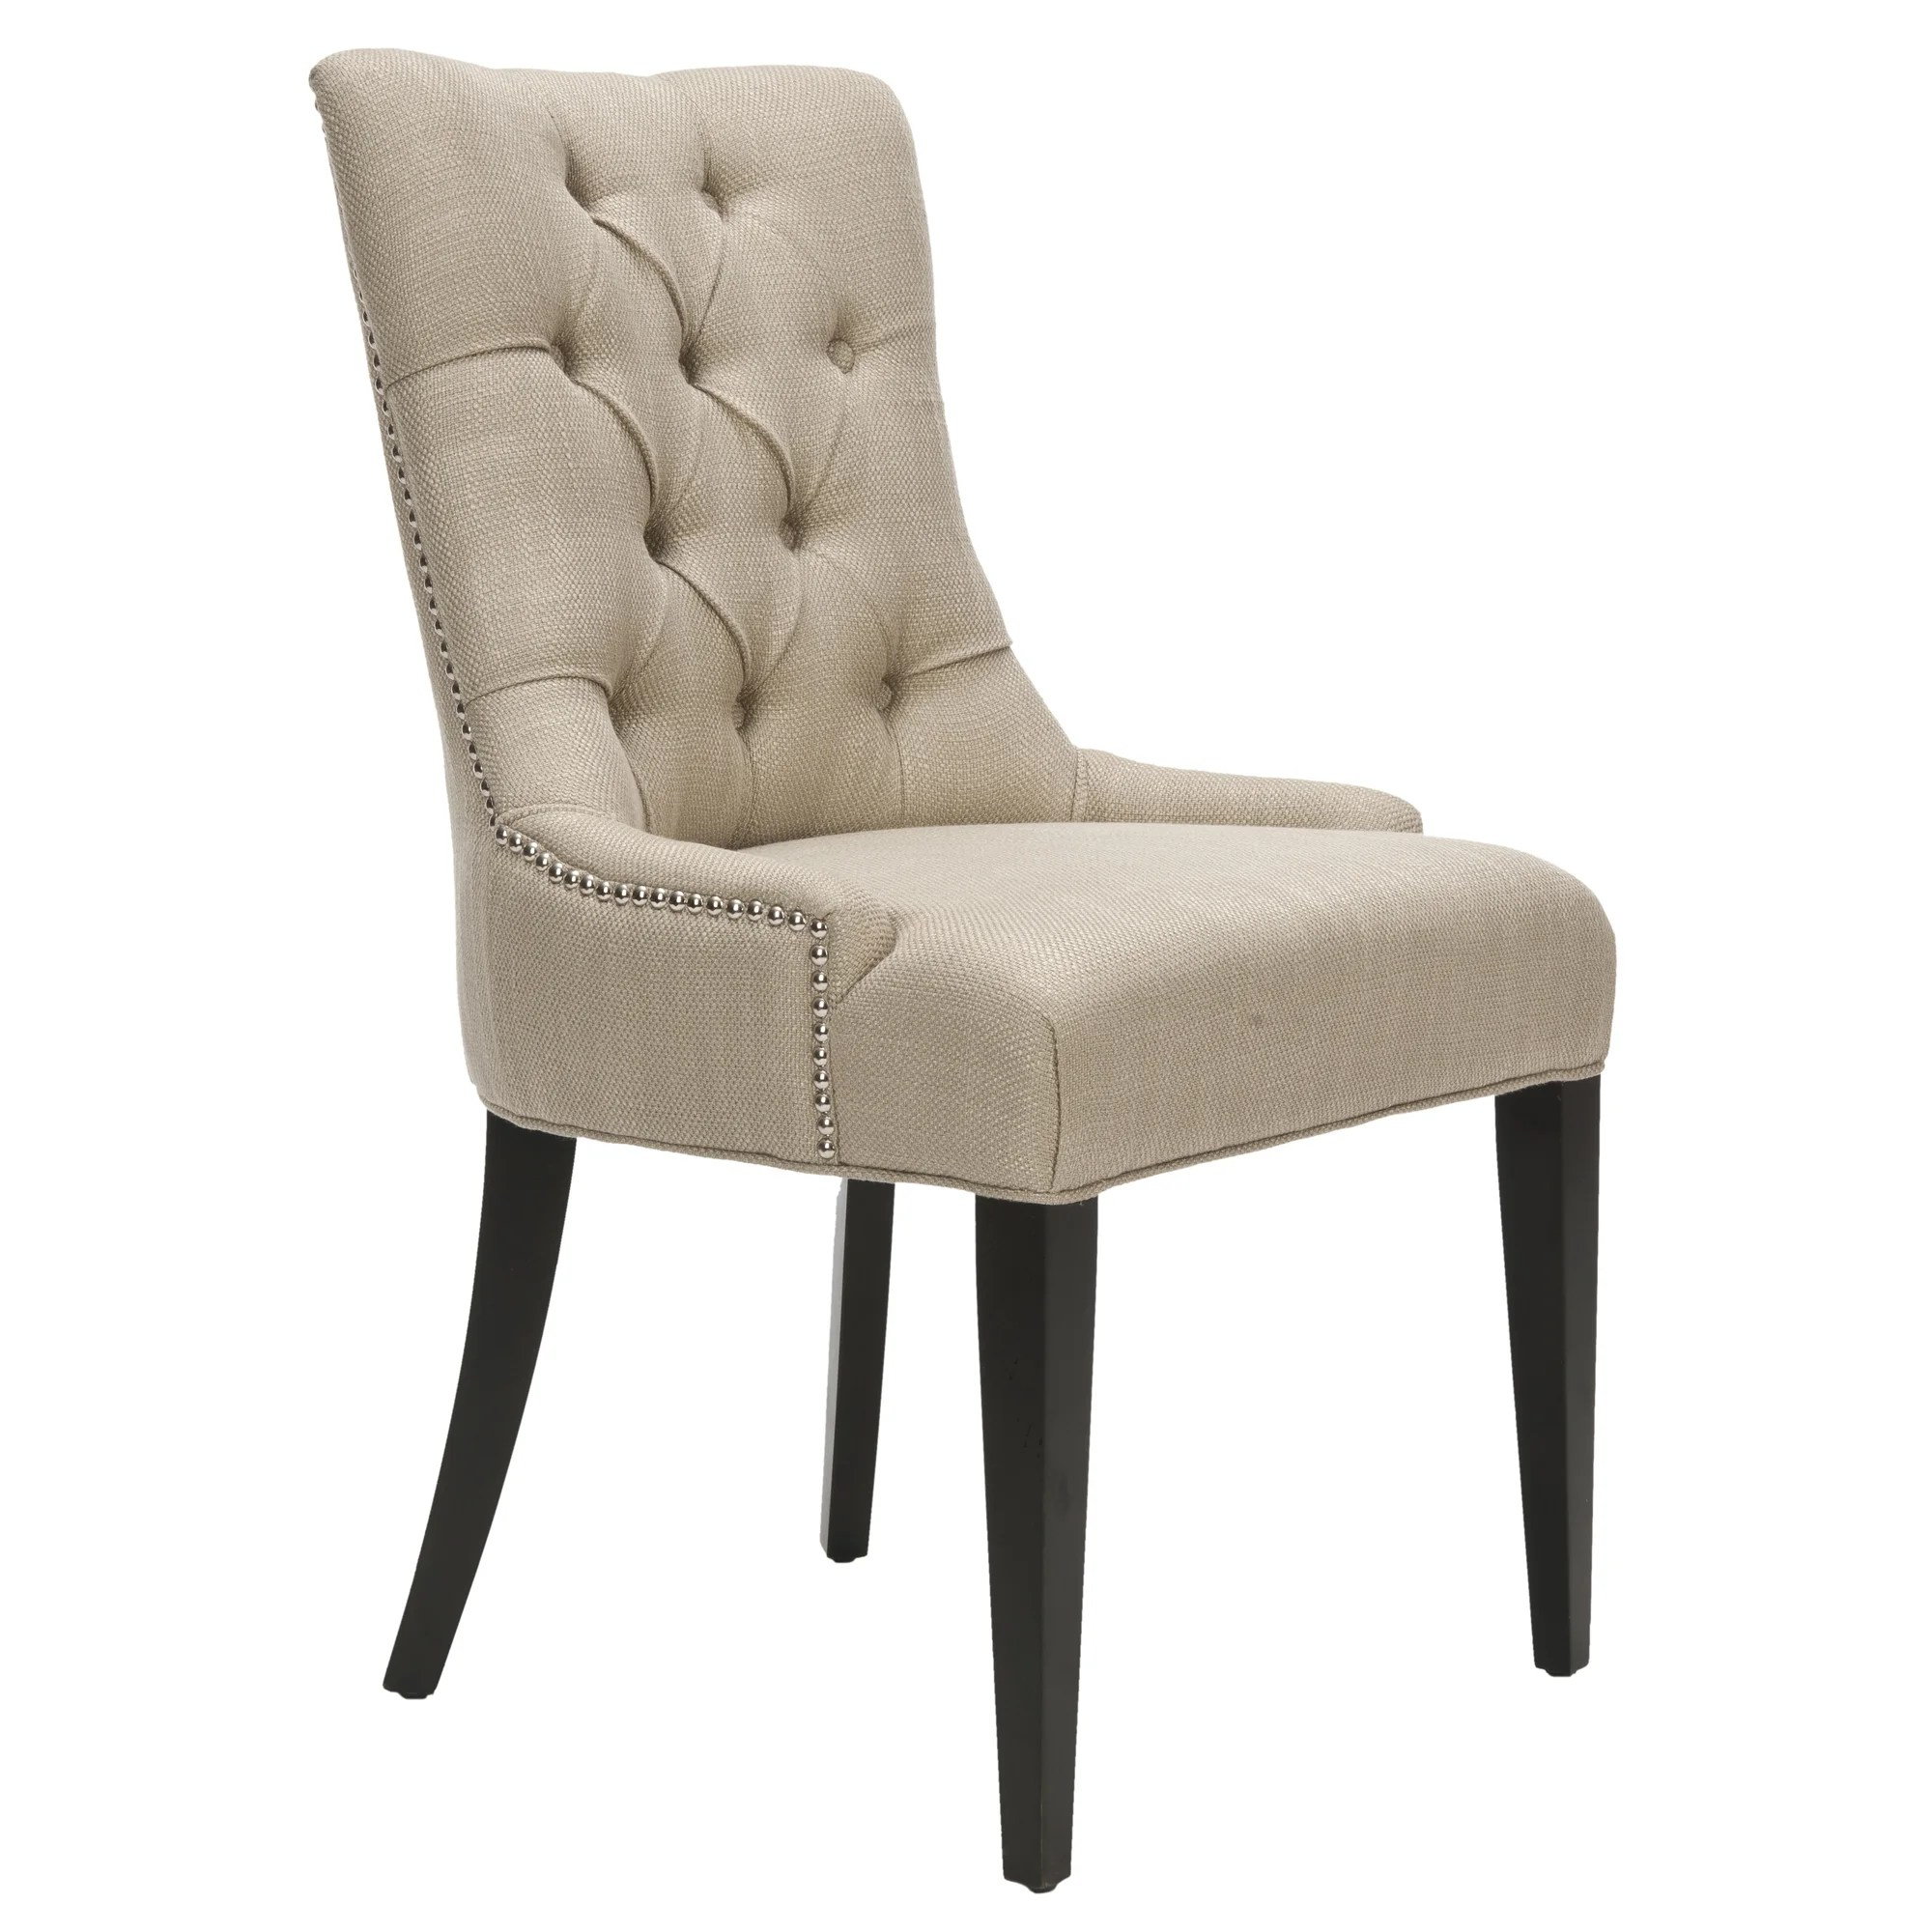 Overstock Chairs Safavieh Nimes Beige Tufted Linen Side Chair Overstock